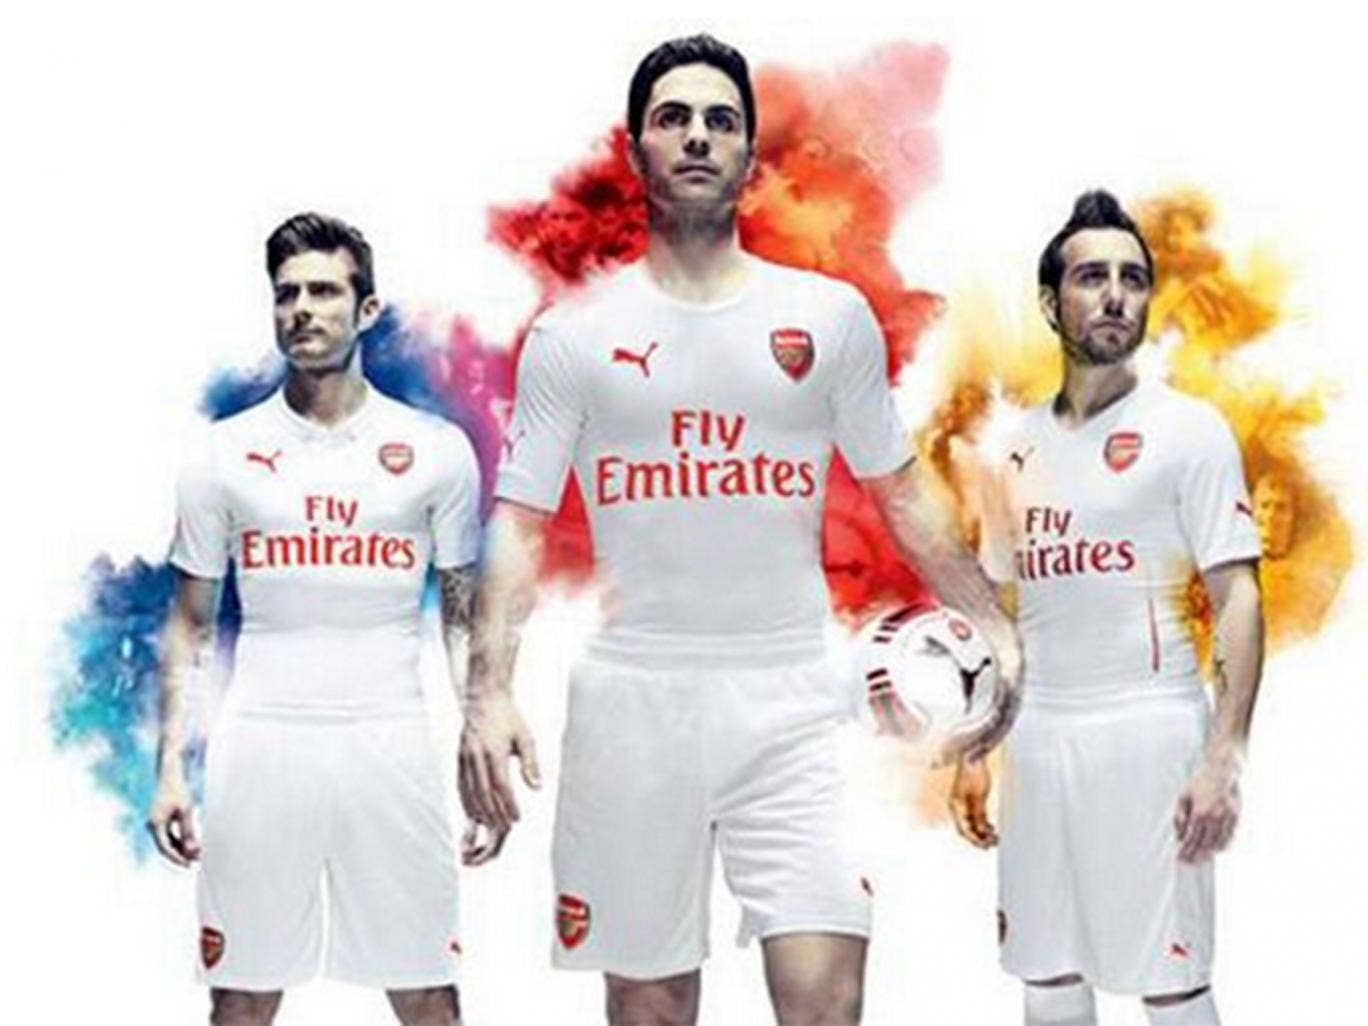 Arsenal started their new deal with sportswear brand Puma today, launching a series of teasers